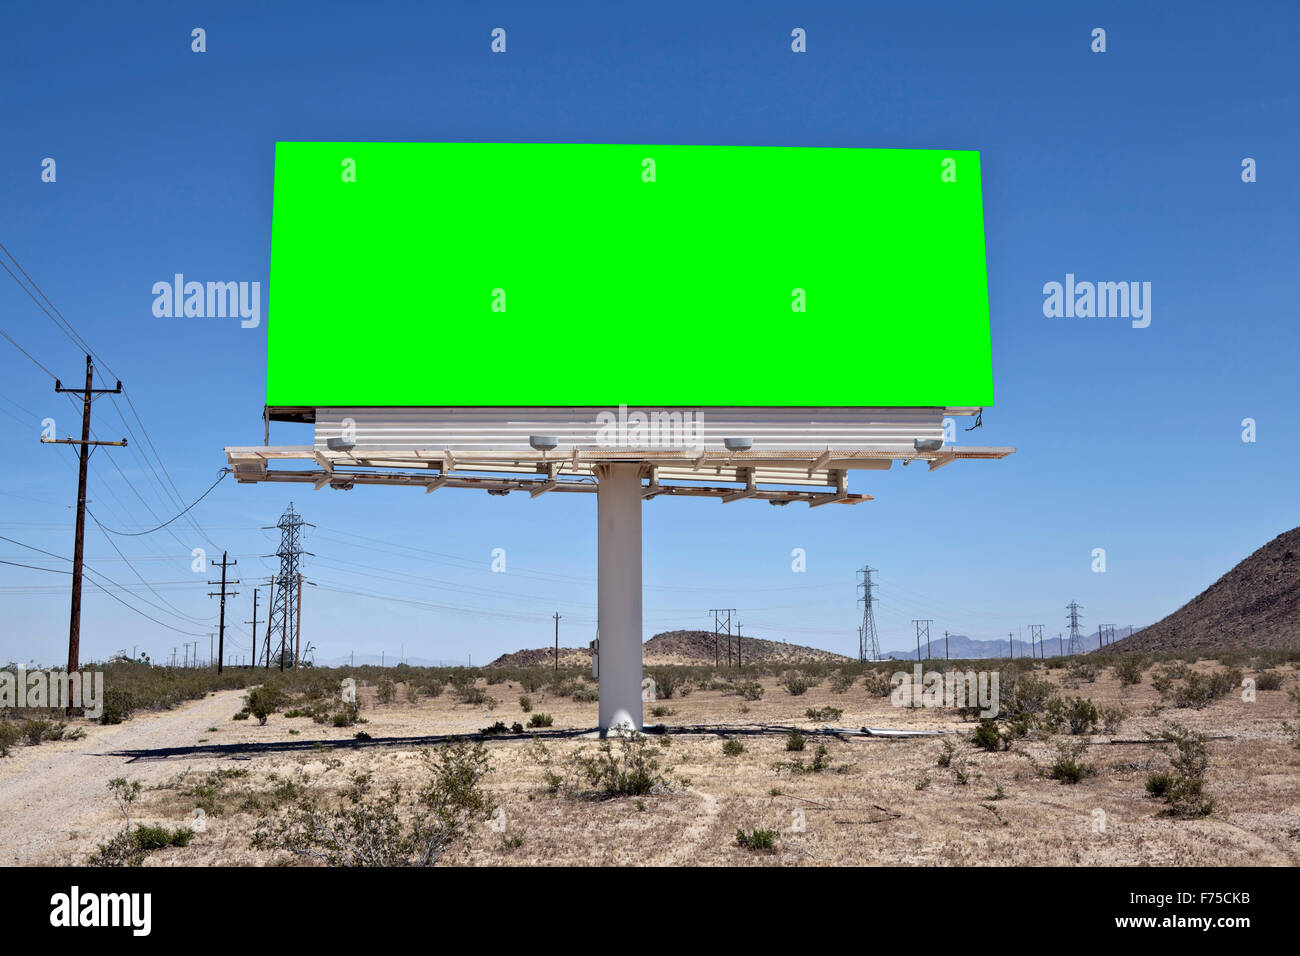 Green chroma key billboard in the middle of California's Mojave desert. - Stock Image